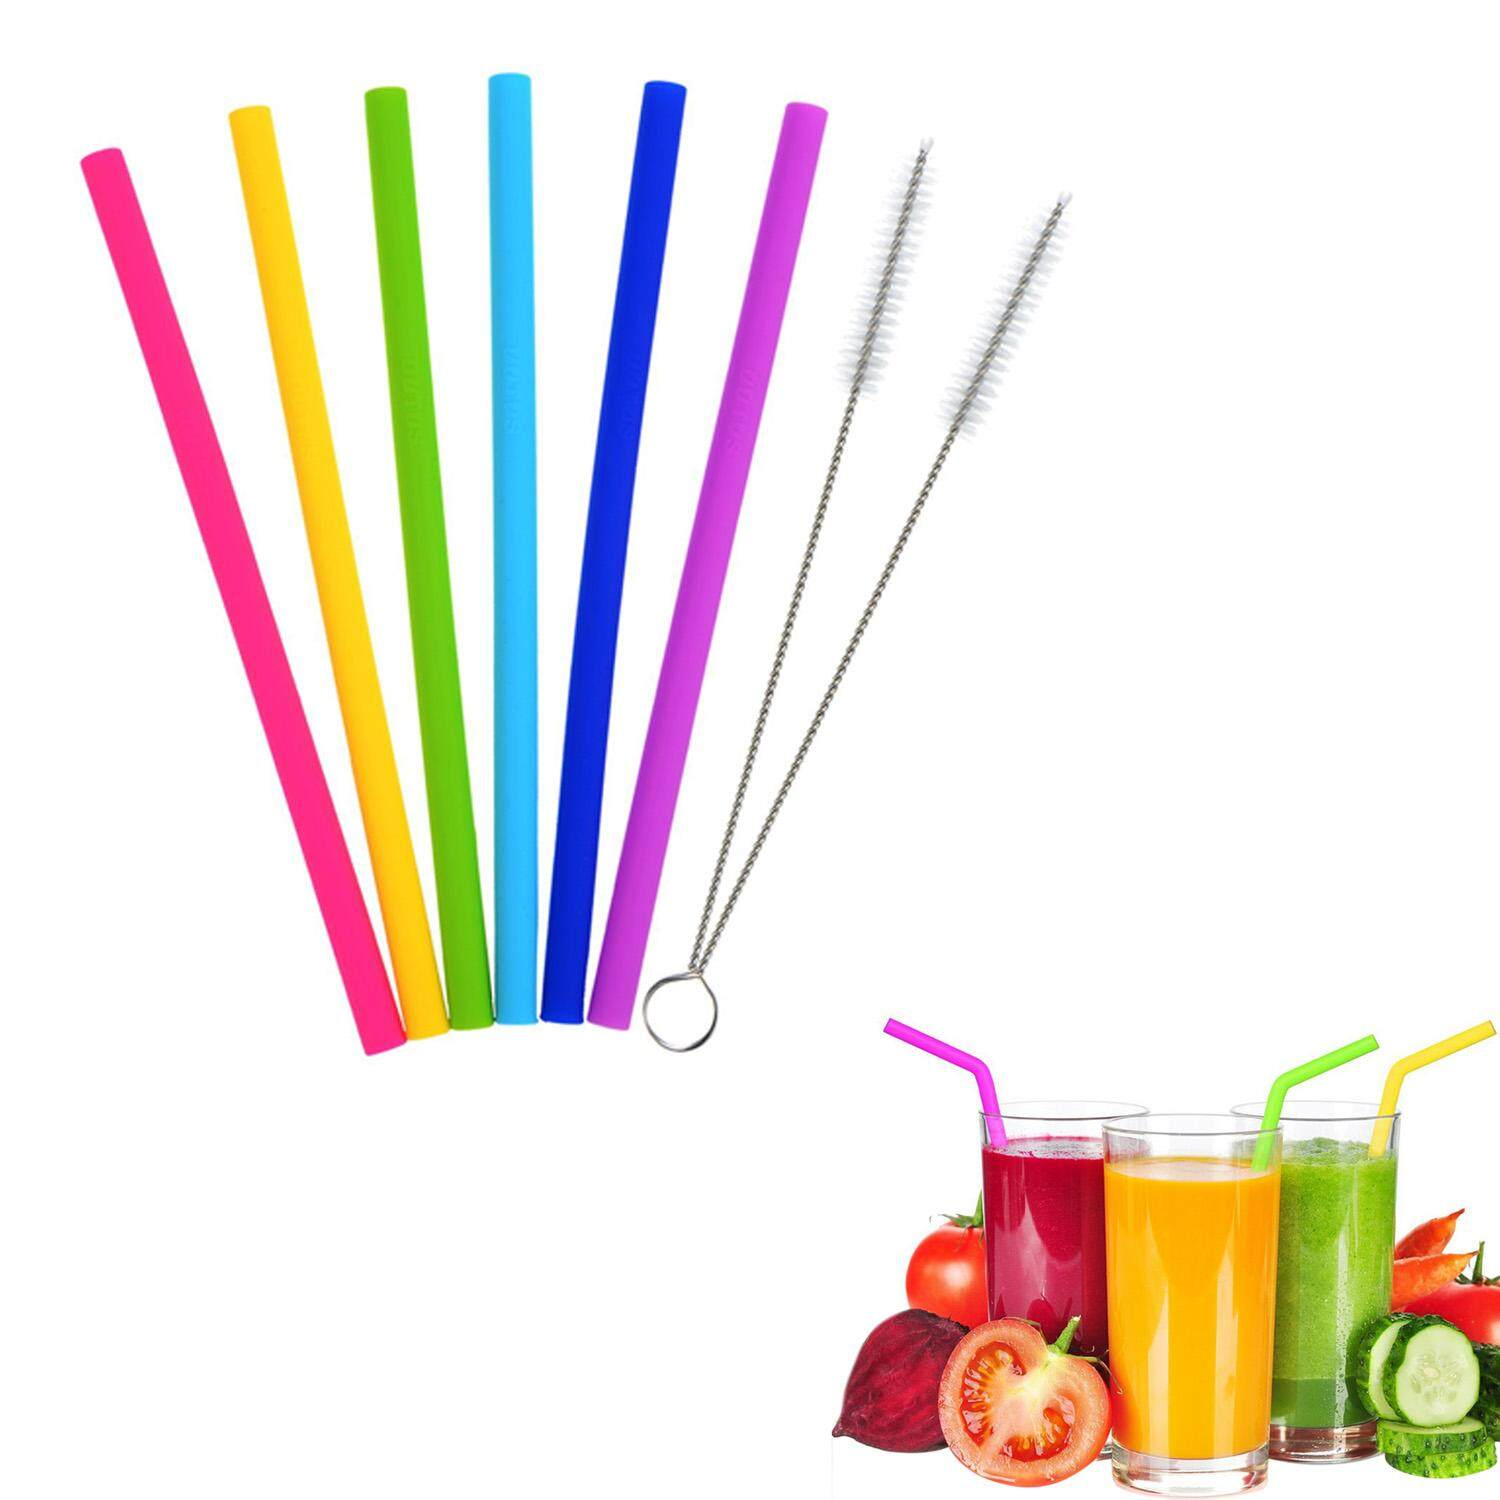 Assorted Colors Reusable Silicone Drinking Straws With Cleaning Brushes For Home Coffee Cold Drink Shop 10 Inch Length - Intl By Vococal Shop.